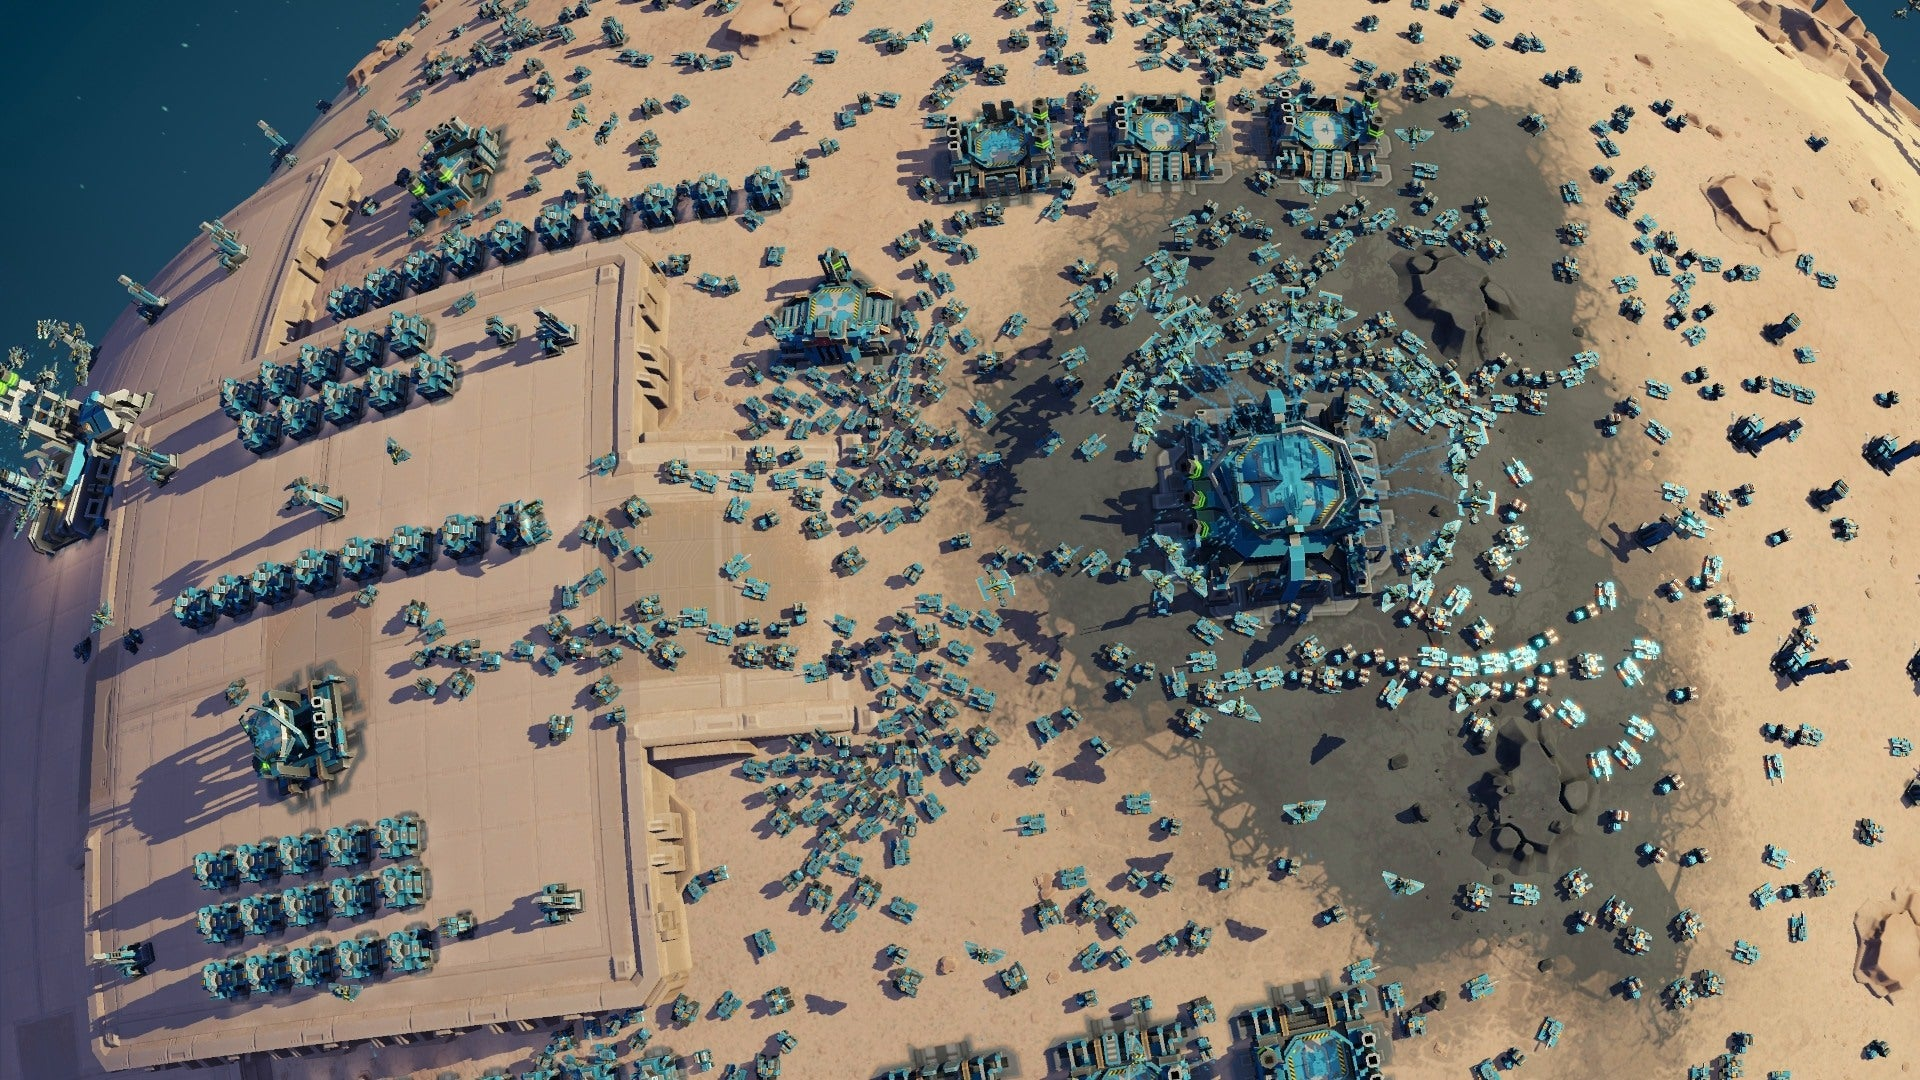 Wallpaper Planetary Annihilation Hd